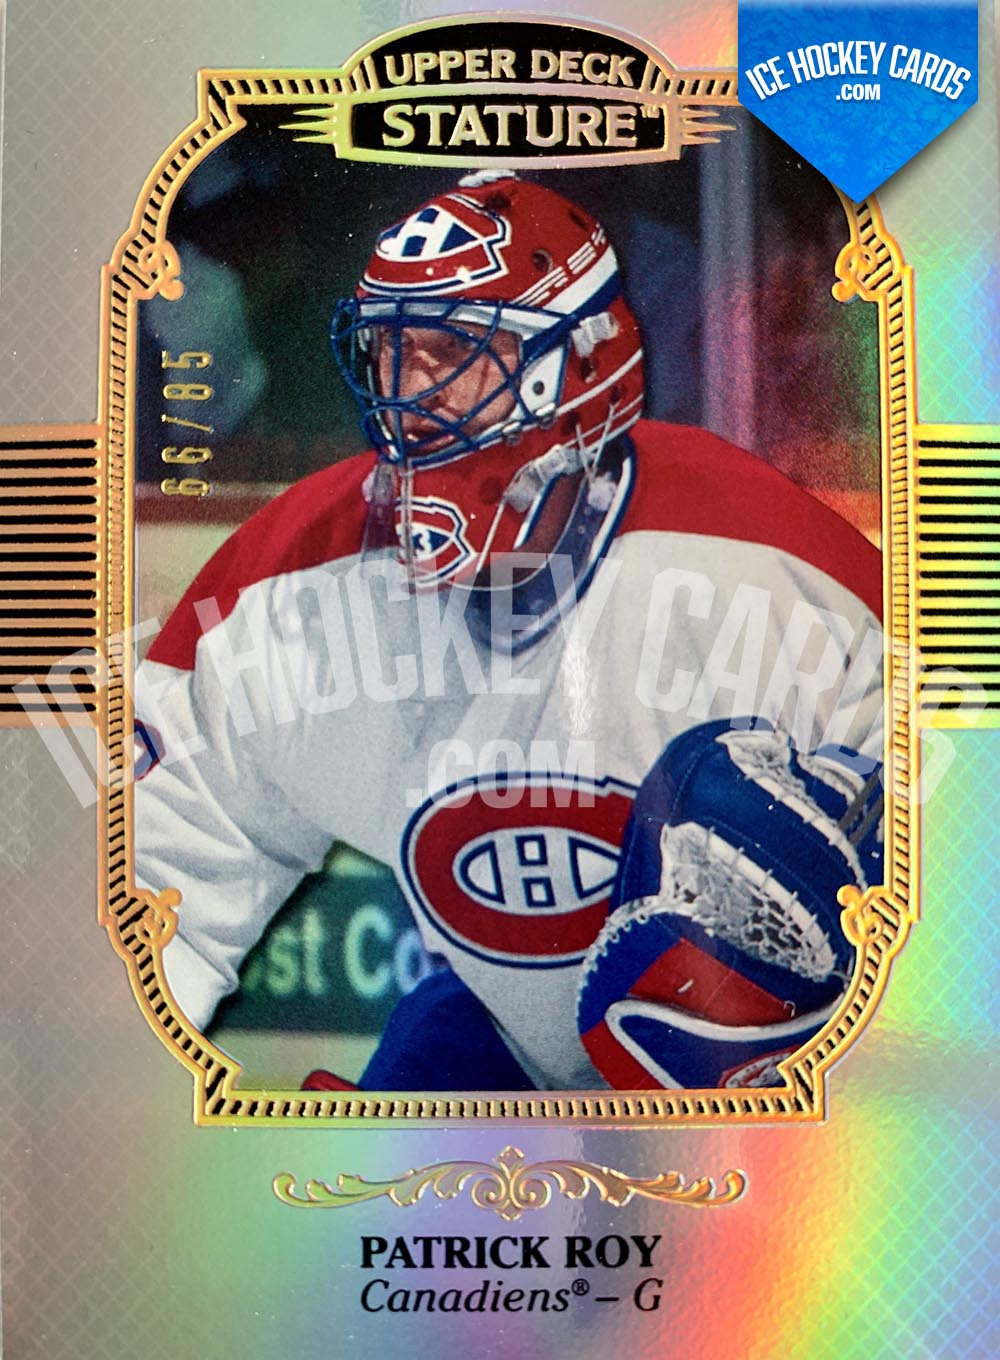 Upper Deck - Stature 2019-20 - Patrick Roy The Alumni Base Legend Card # to 85